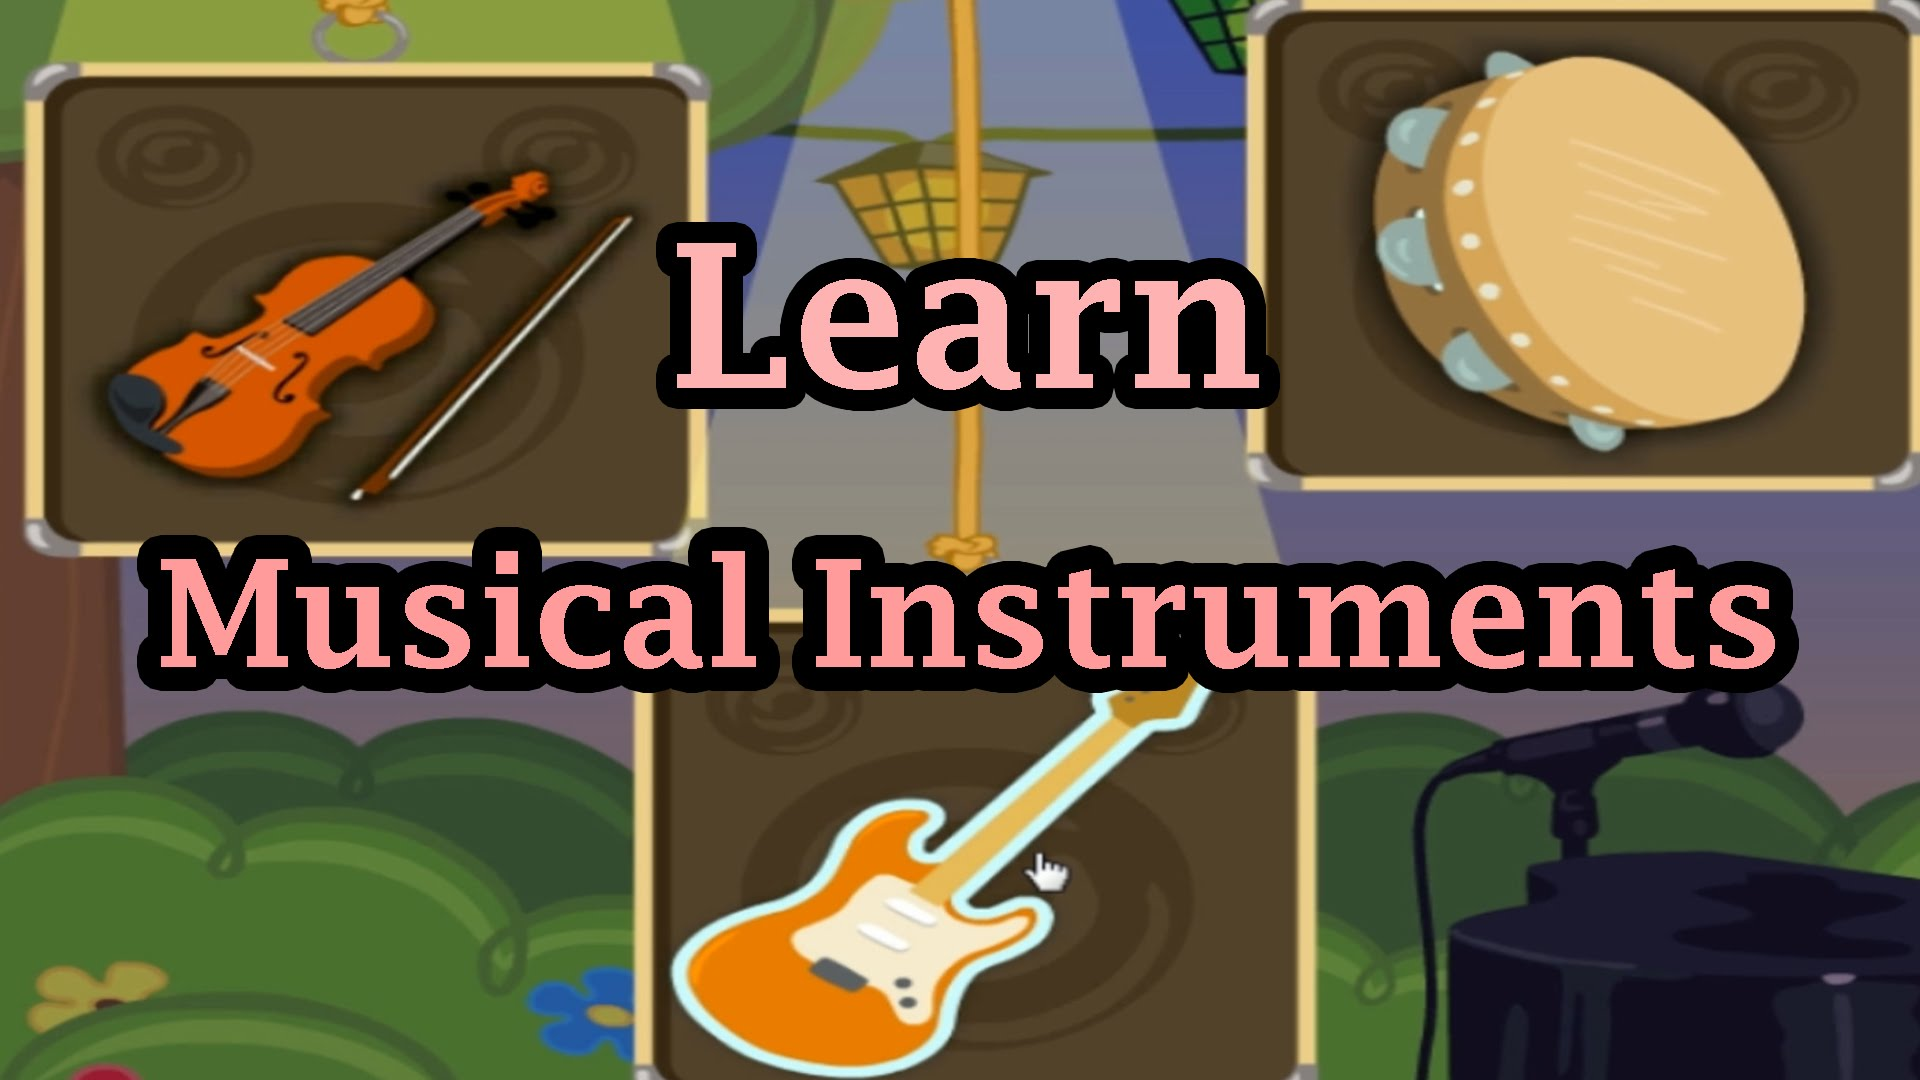 Noise clipart preschool music Learning Instruments Learning  Sounds